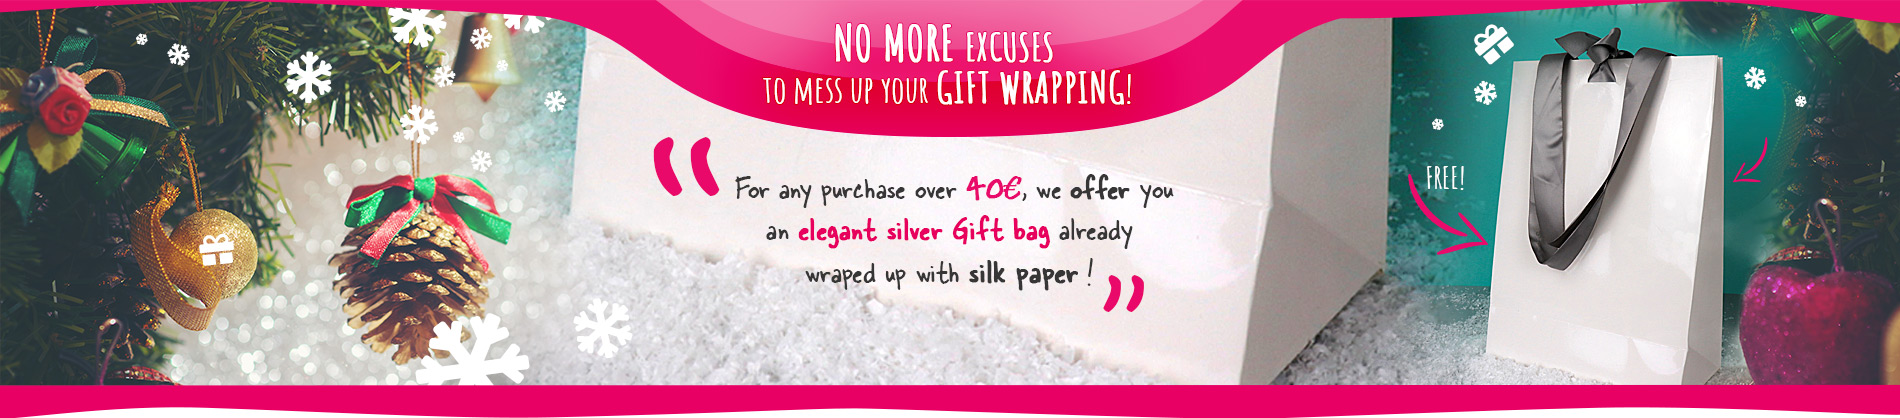 No more excuses to mess up your gift wrapping!